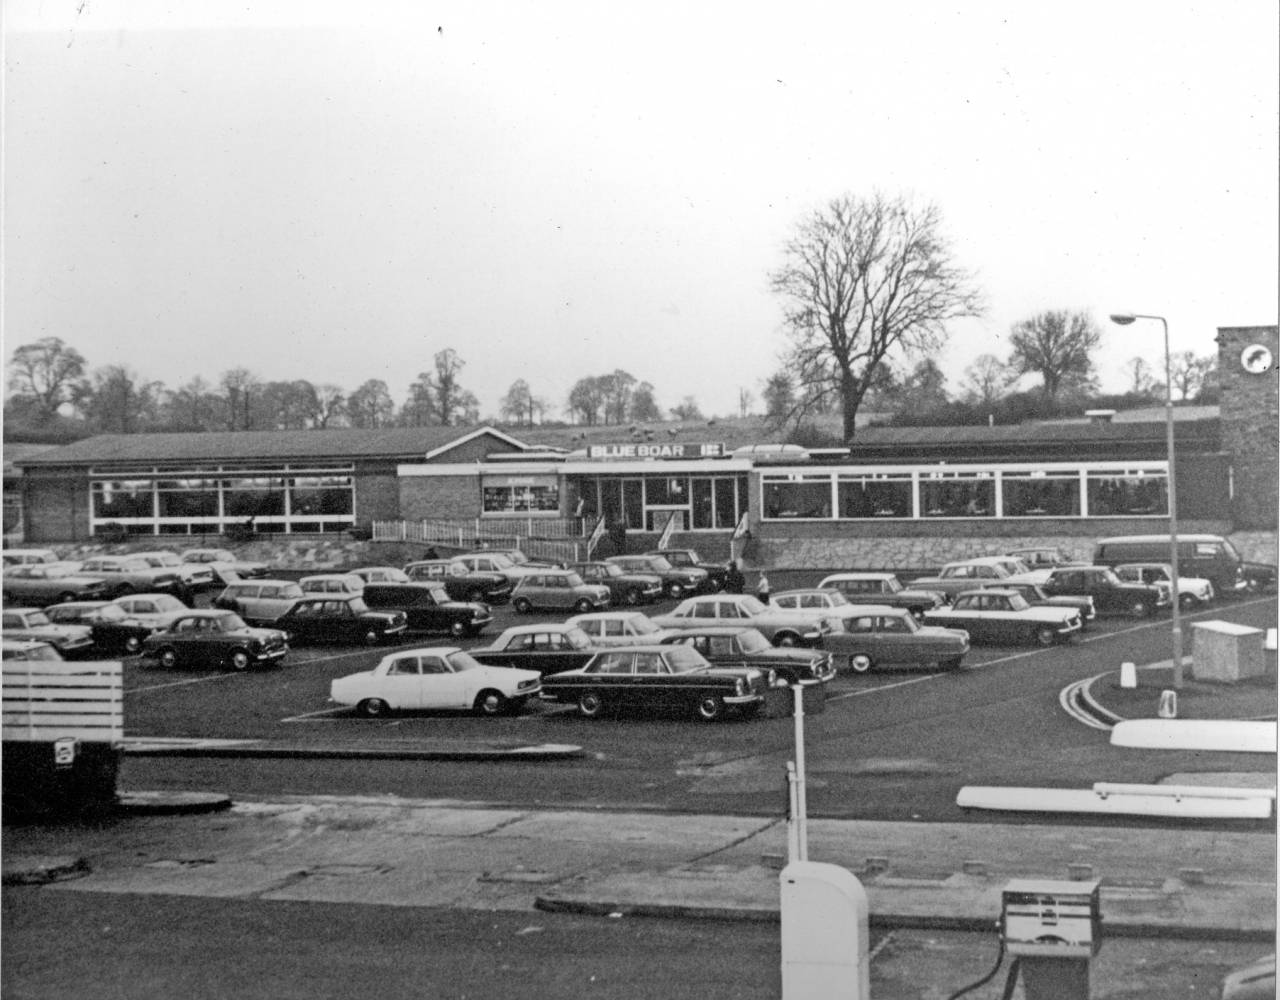 Watford Gap Blue_Boar_car_park the original northbound building and car park. The restaurant is on the left and transport café is on the right.